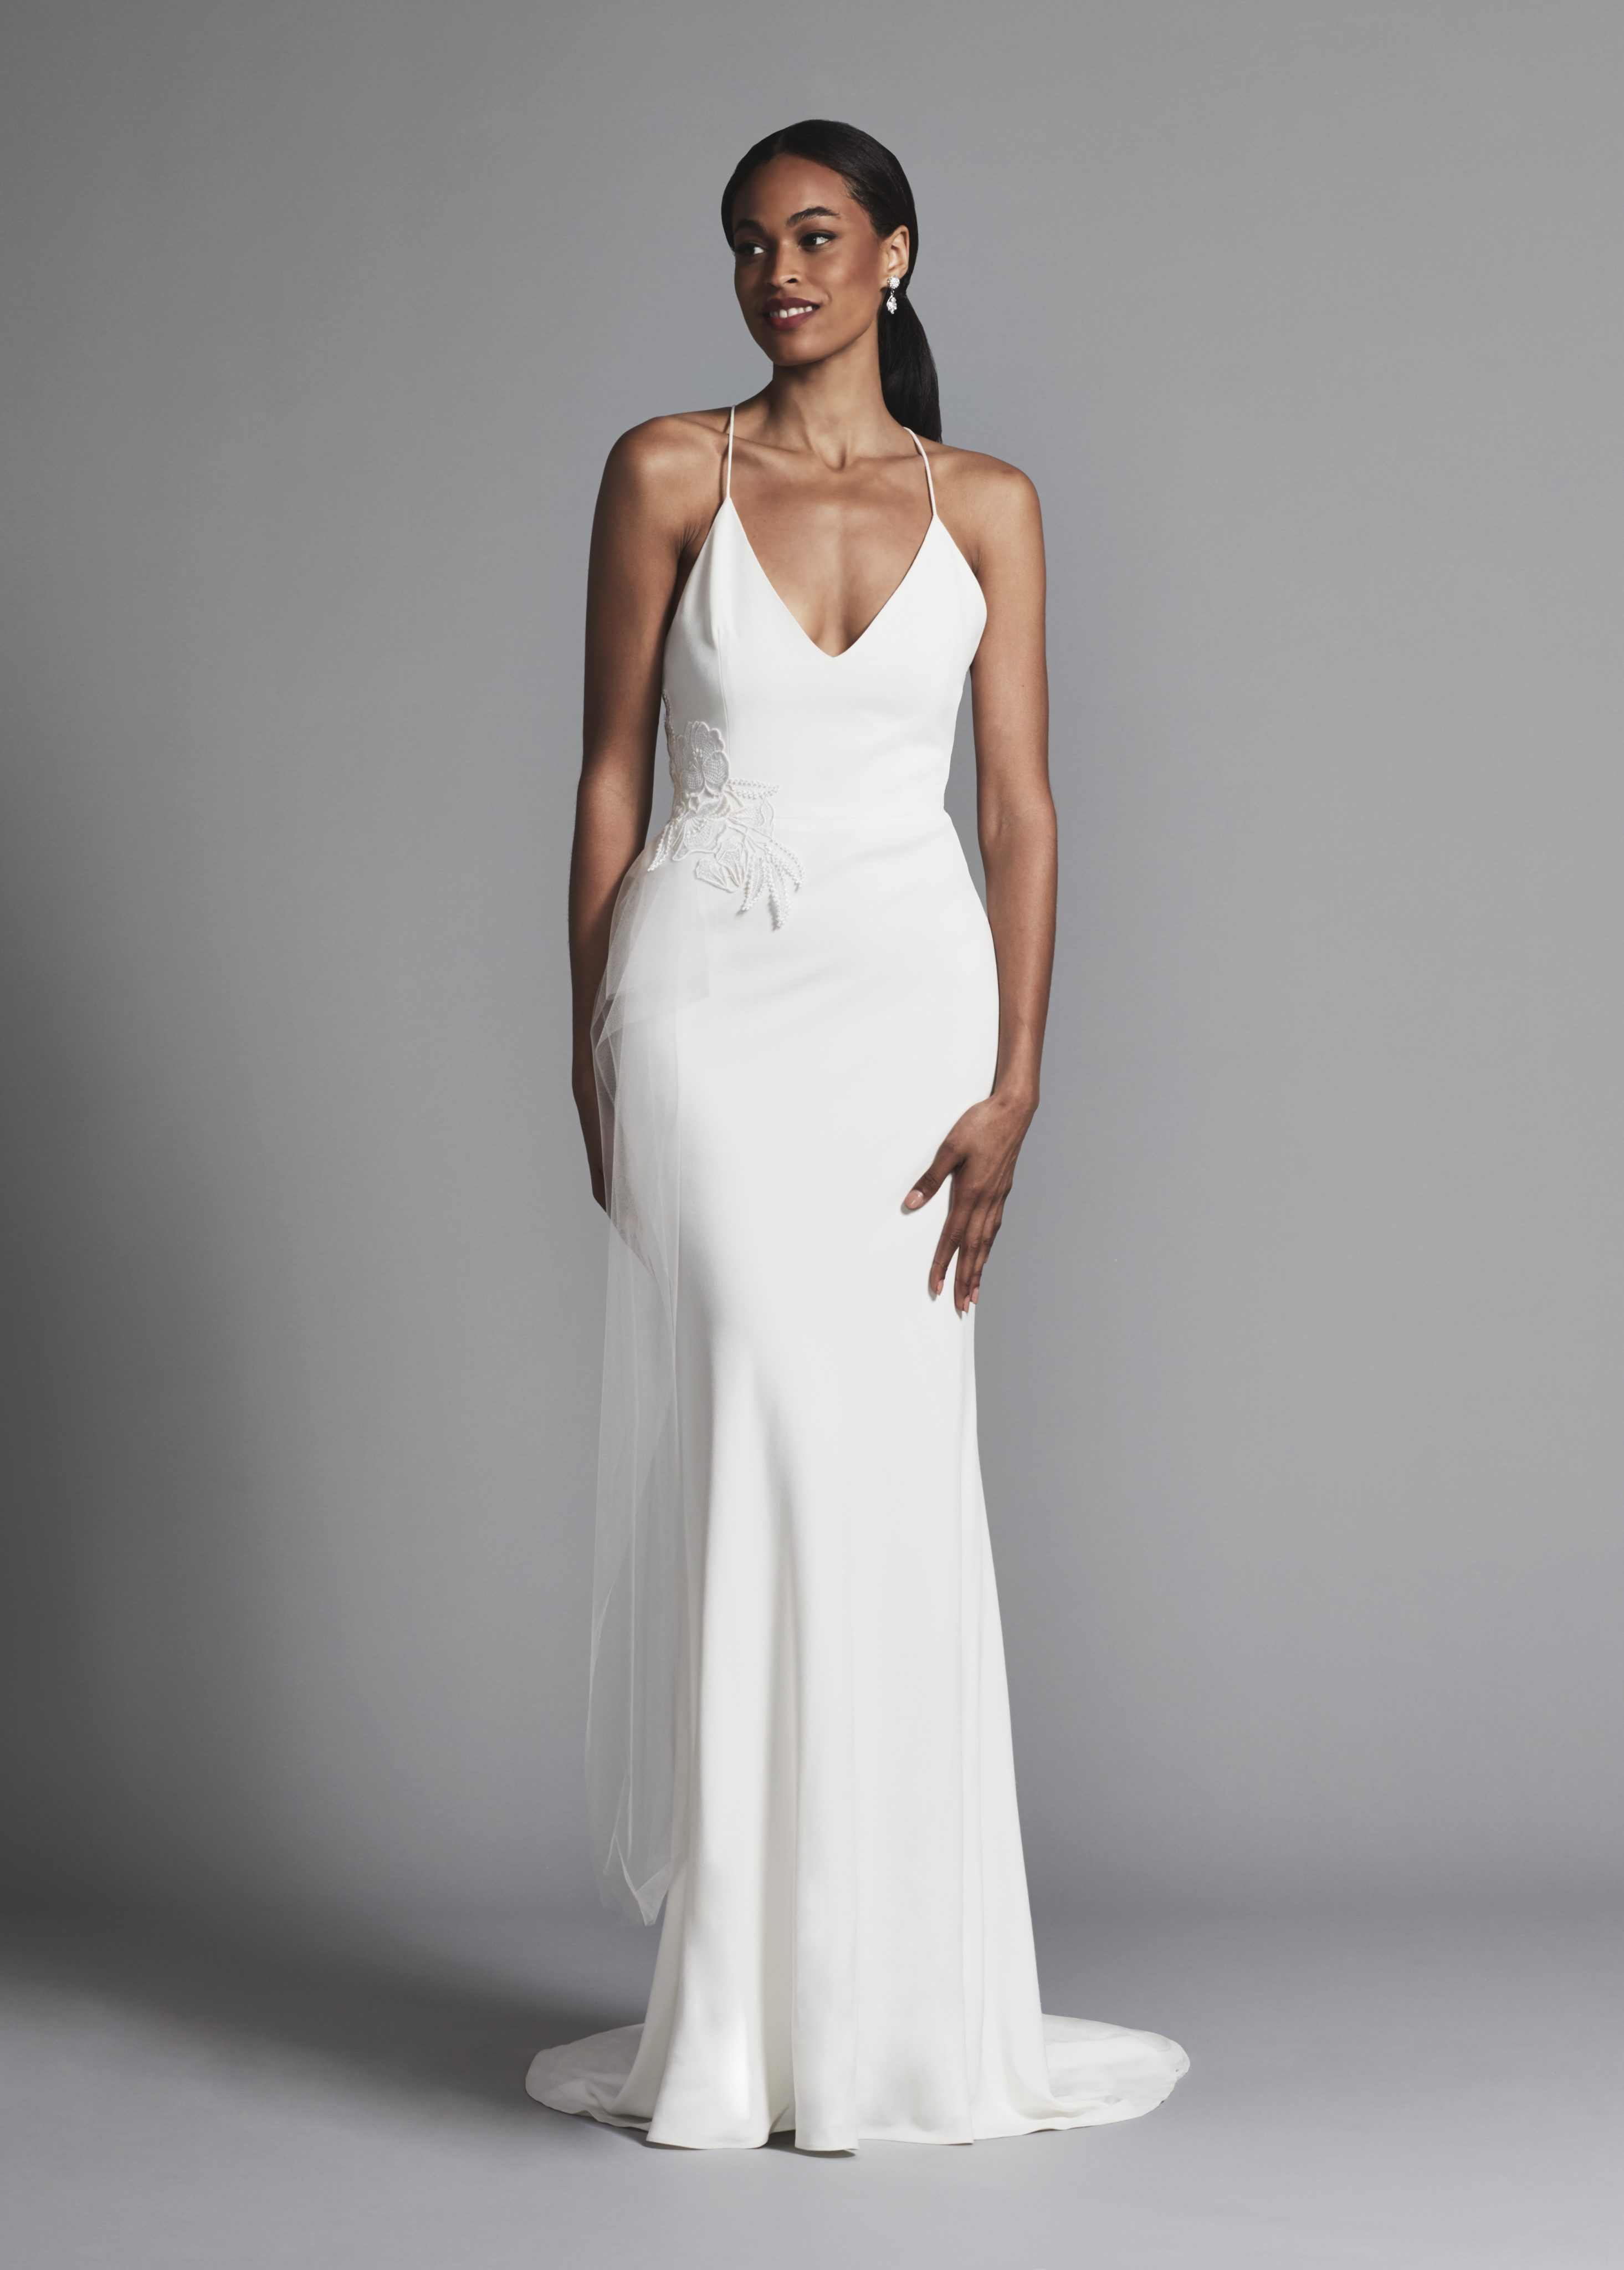 Simple And Chic Spaghetti Strap Crepe Sheath Wedding Dress